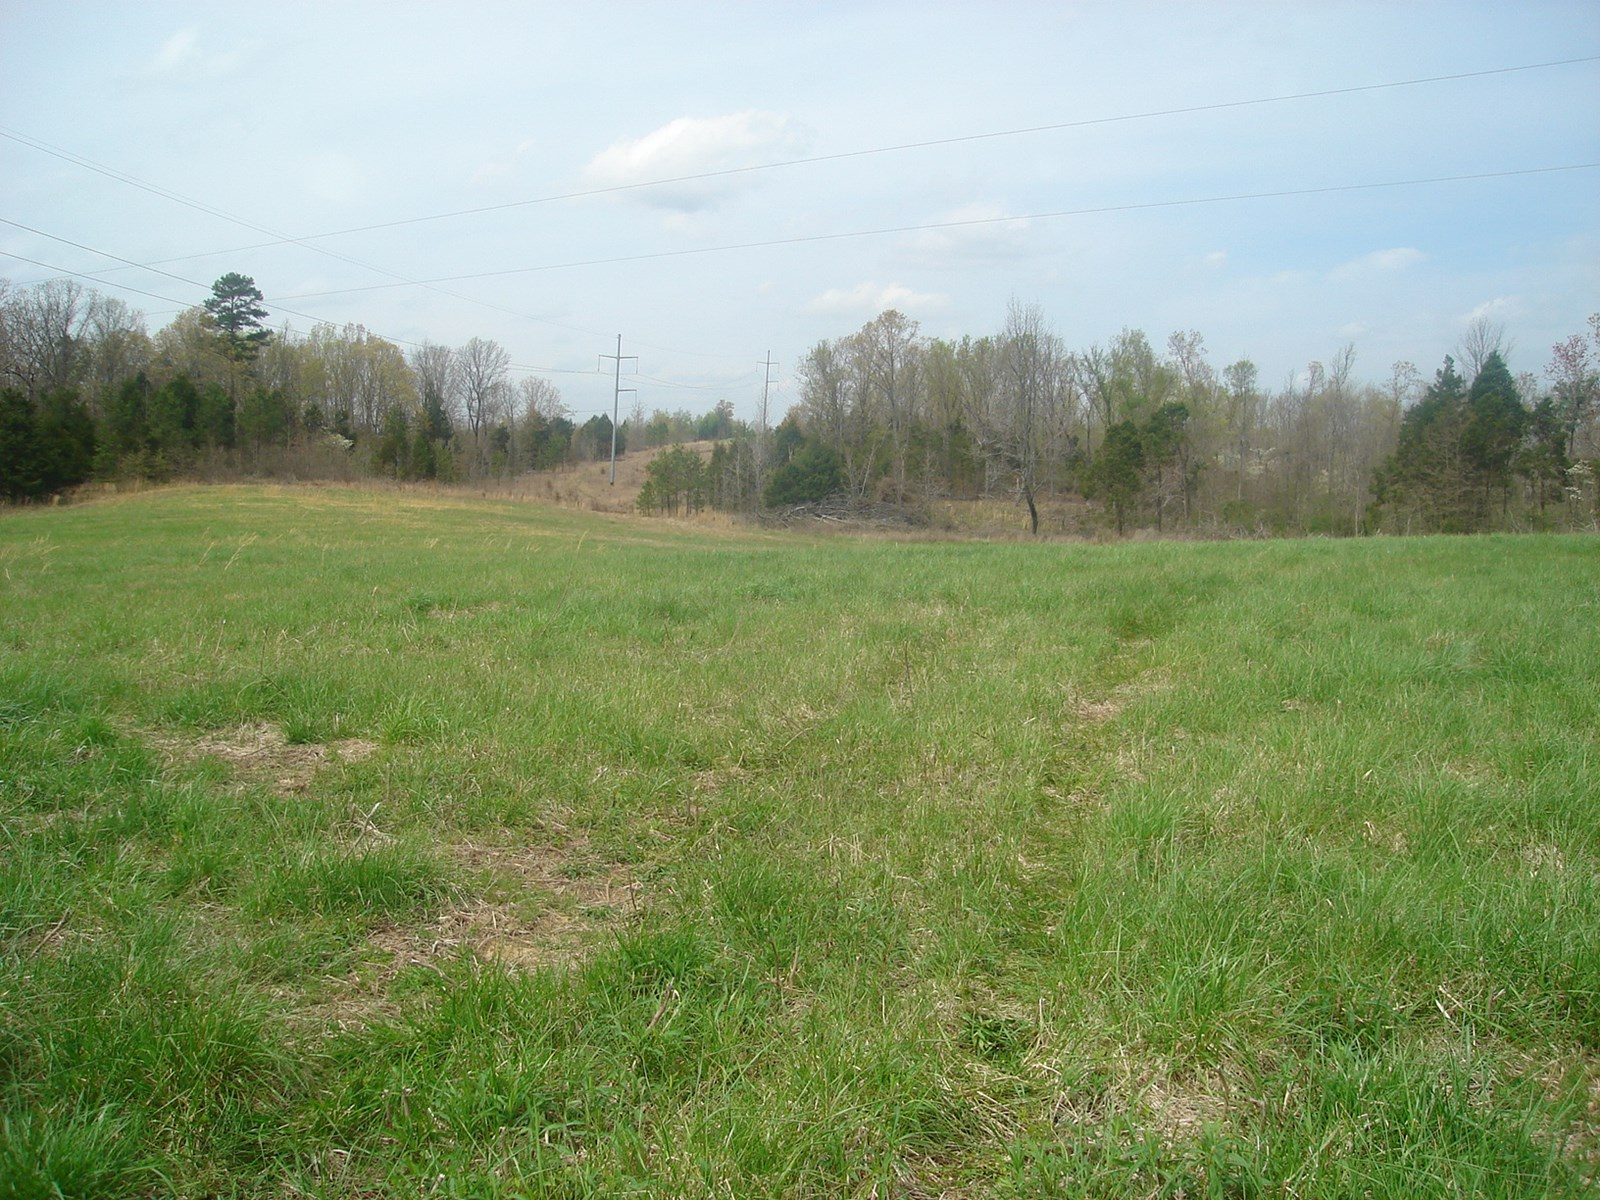 27AC-GREAT FOR BUILDING, HUNTING OR CATTLE